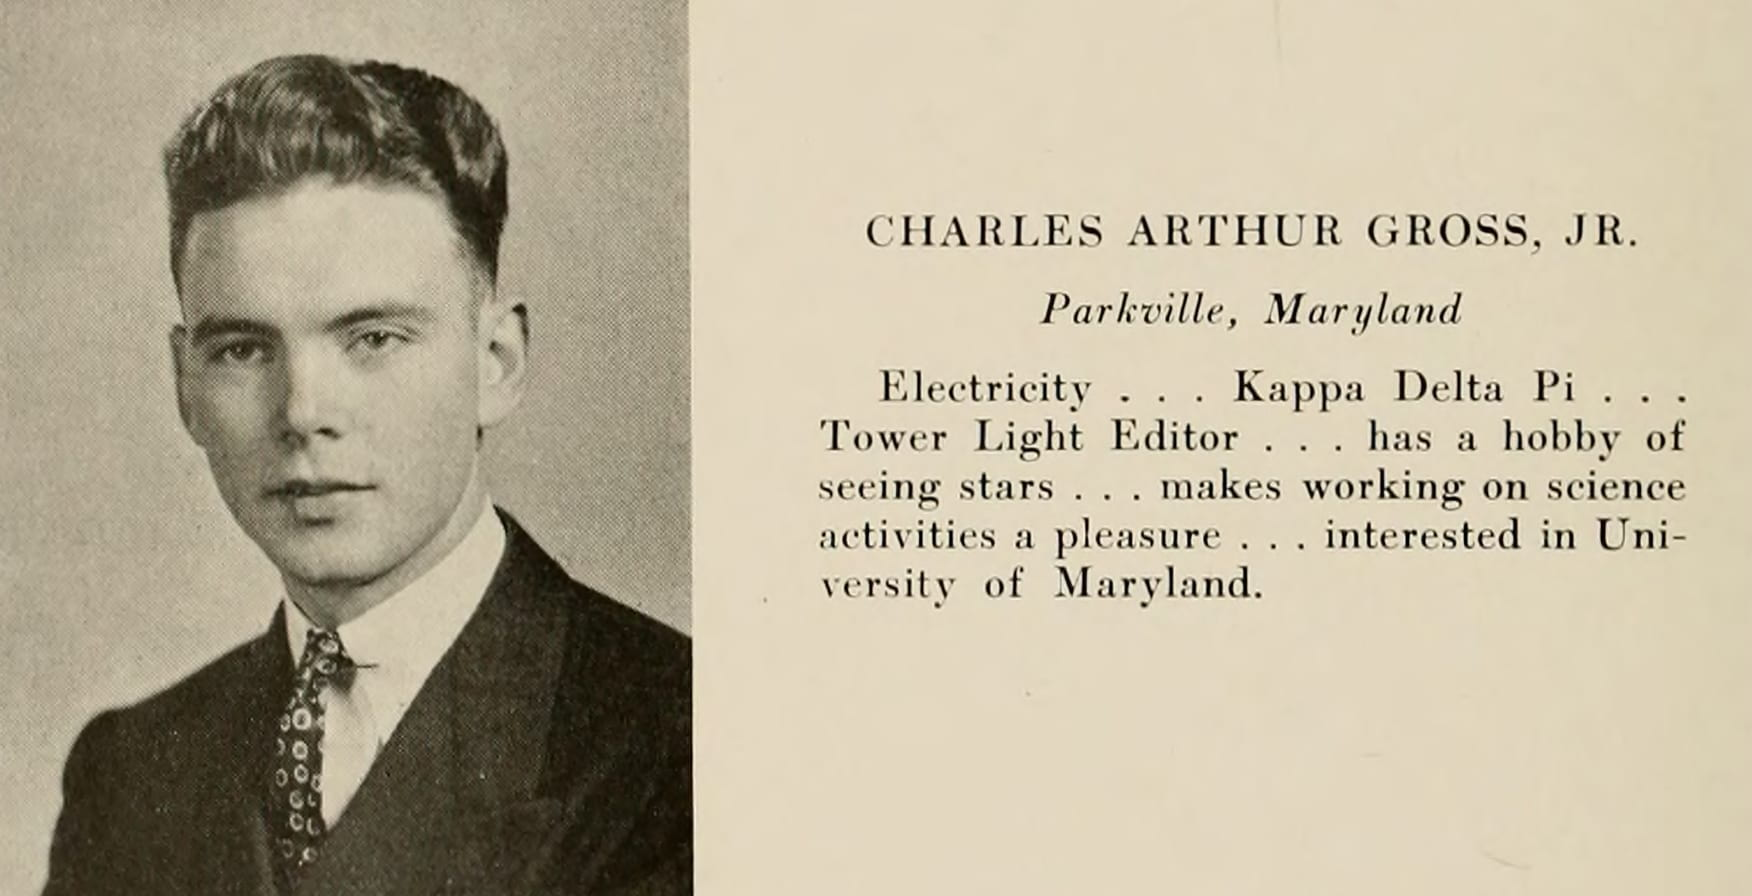 Senior photo of Gross. His bio reads: Charles Arthur Gross, Jr. Parkville, Maryland. Electricity . . . Kappa Delta Pi . . . Tower Light Editor . . . has a hobby of seeing stars . . . makes working on science activities a pleasure . . . interested in University of Maryland.